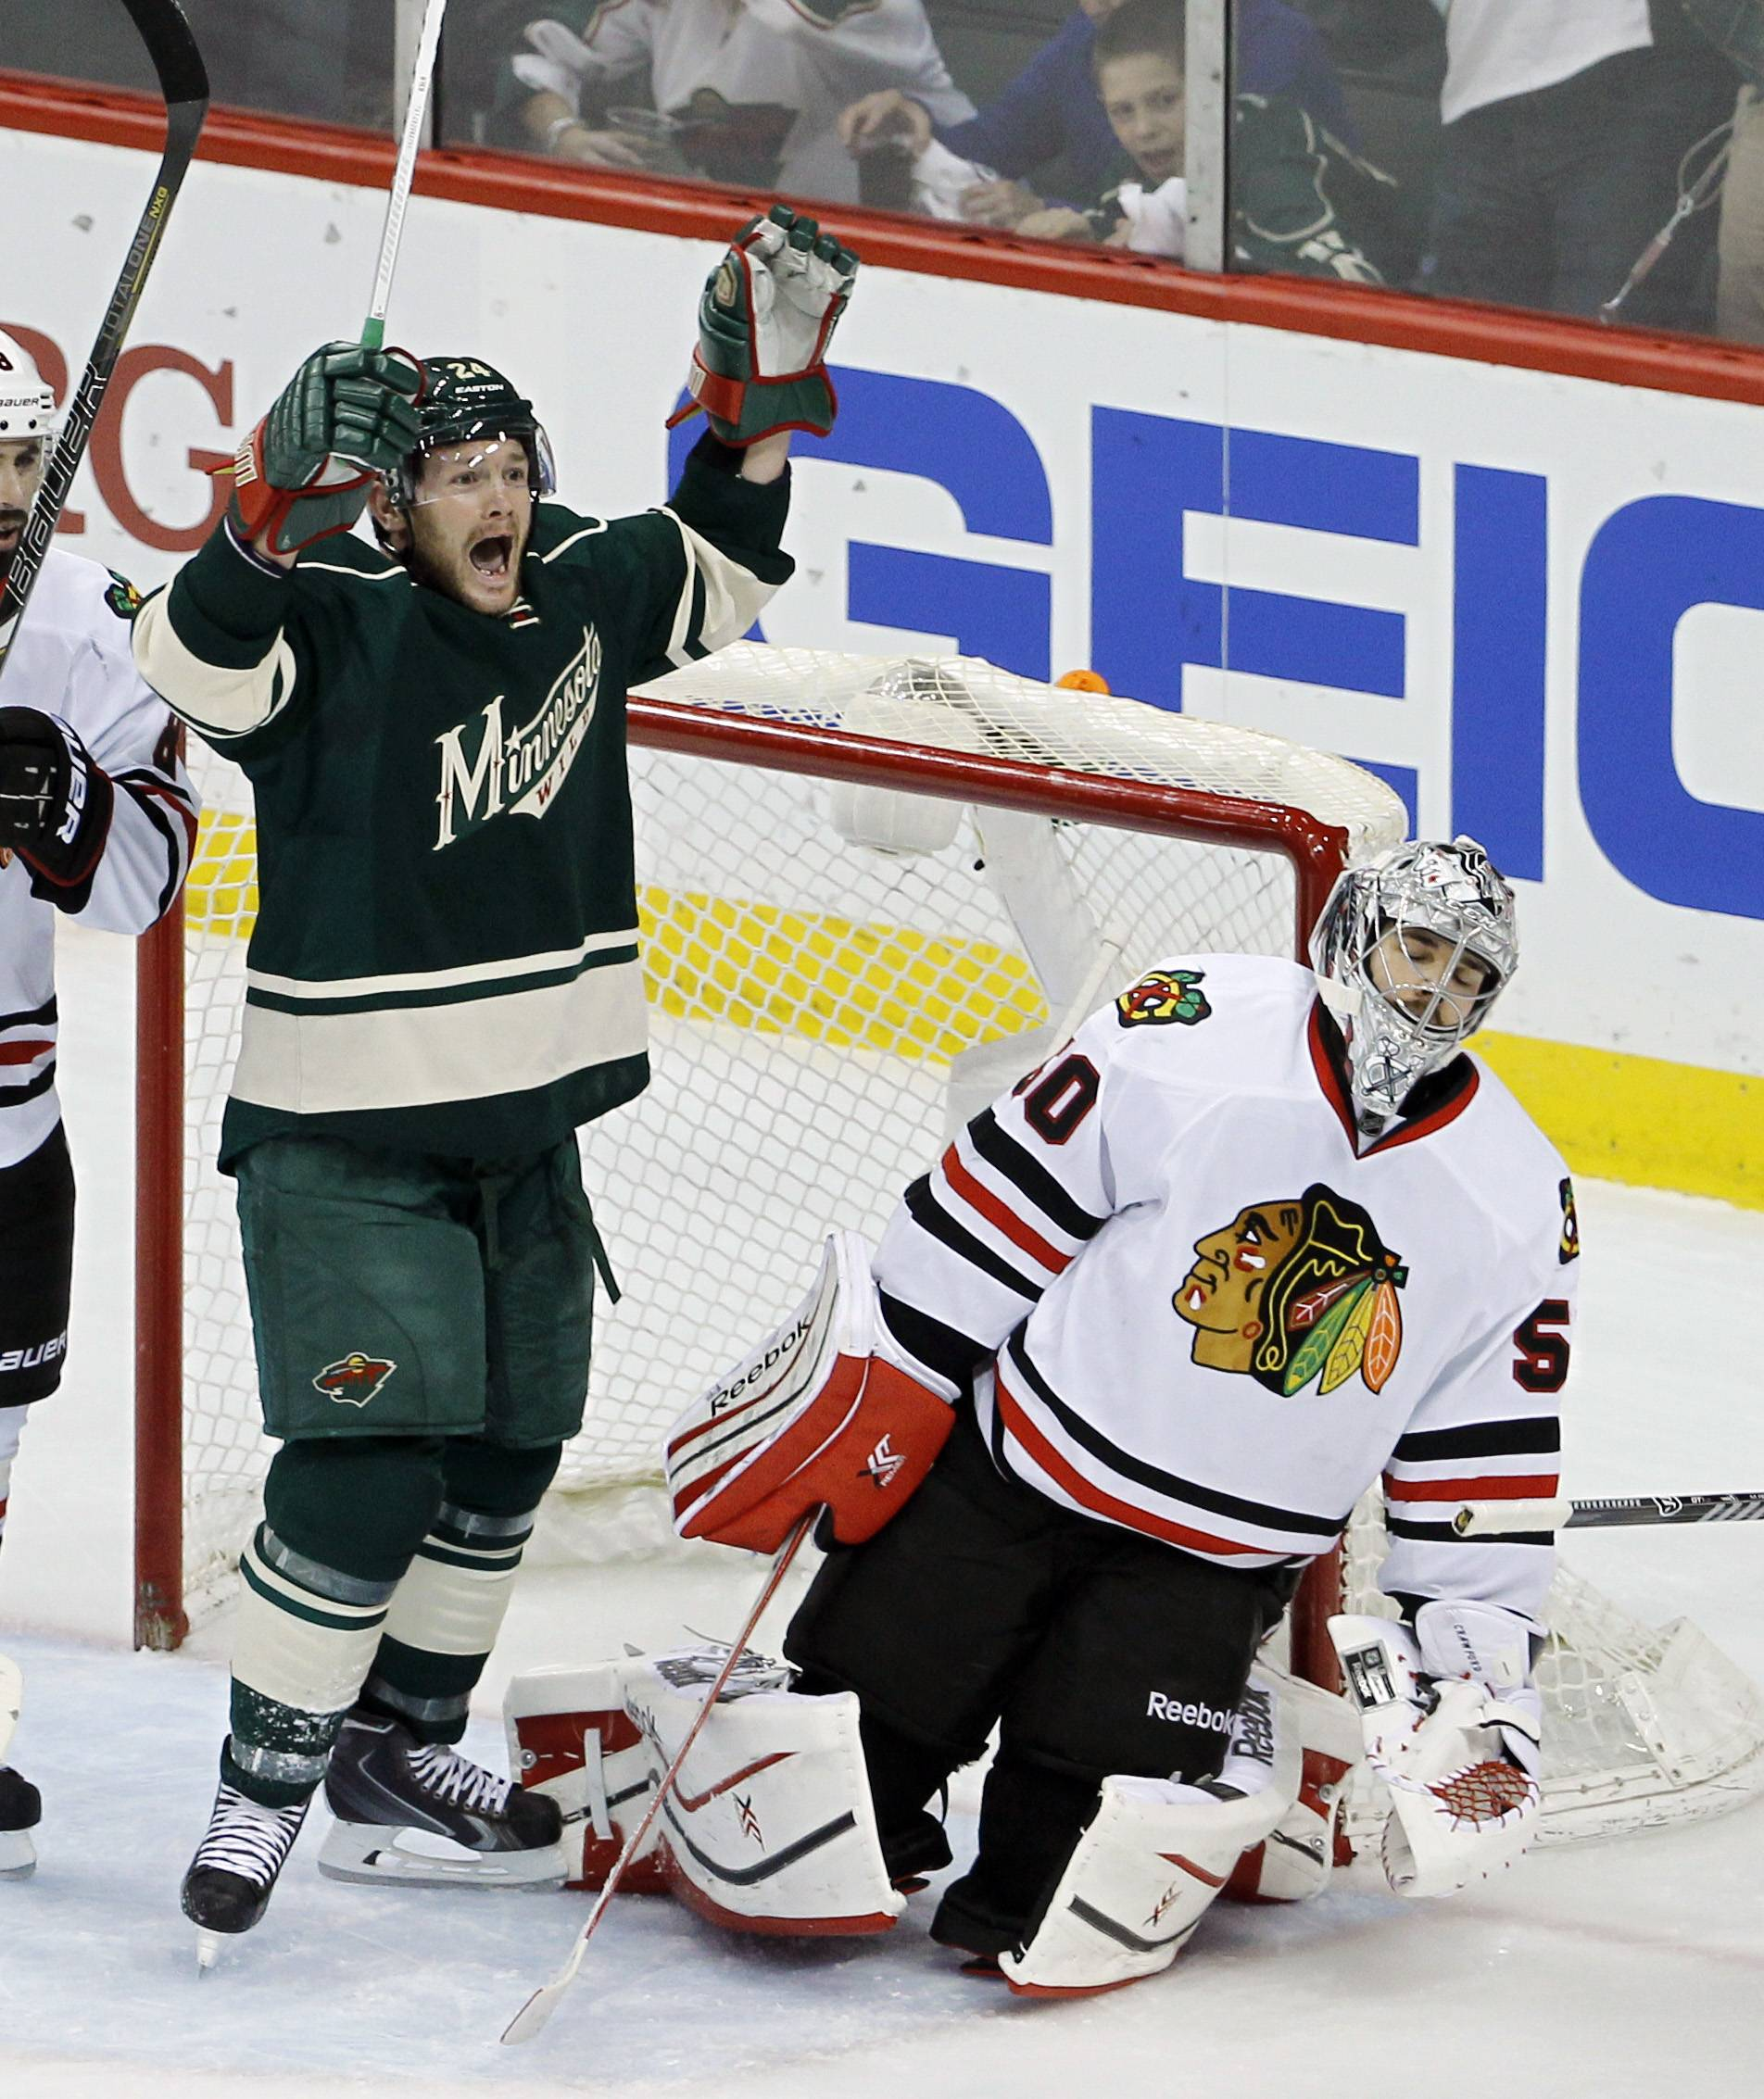 Minnesota Wild left wing Matt Cooke, left, celebrates after Wild right wing Justin Fontaine scored on Blackhawks goalie Corey Crawford during Game 4 of an NHL hockey second-round playoff series Friday in St. Paul, Minnesota. The Wild beat the Hawks 4-2.